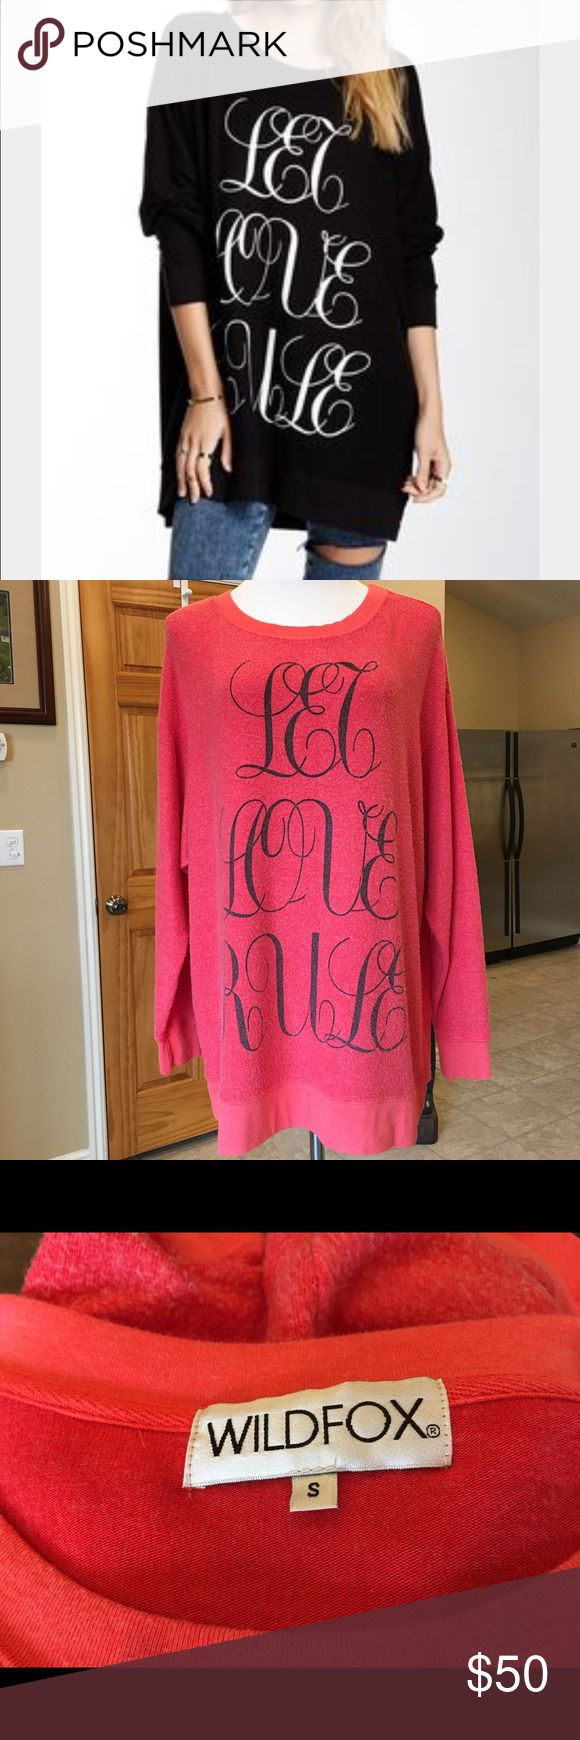 🚩SALE🚩WILDFOX LET LOVE RULE ROAD TRIP SWEATER Worn not more than 5x. In very good condition. Cover photo shows how it looks when worn. Actual item for sale is the red one. Wildfox Tops